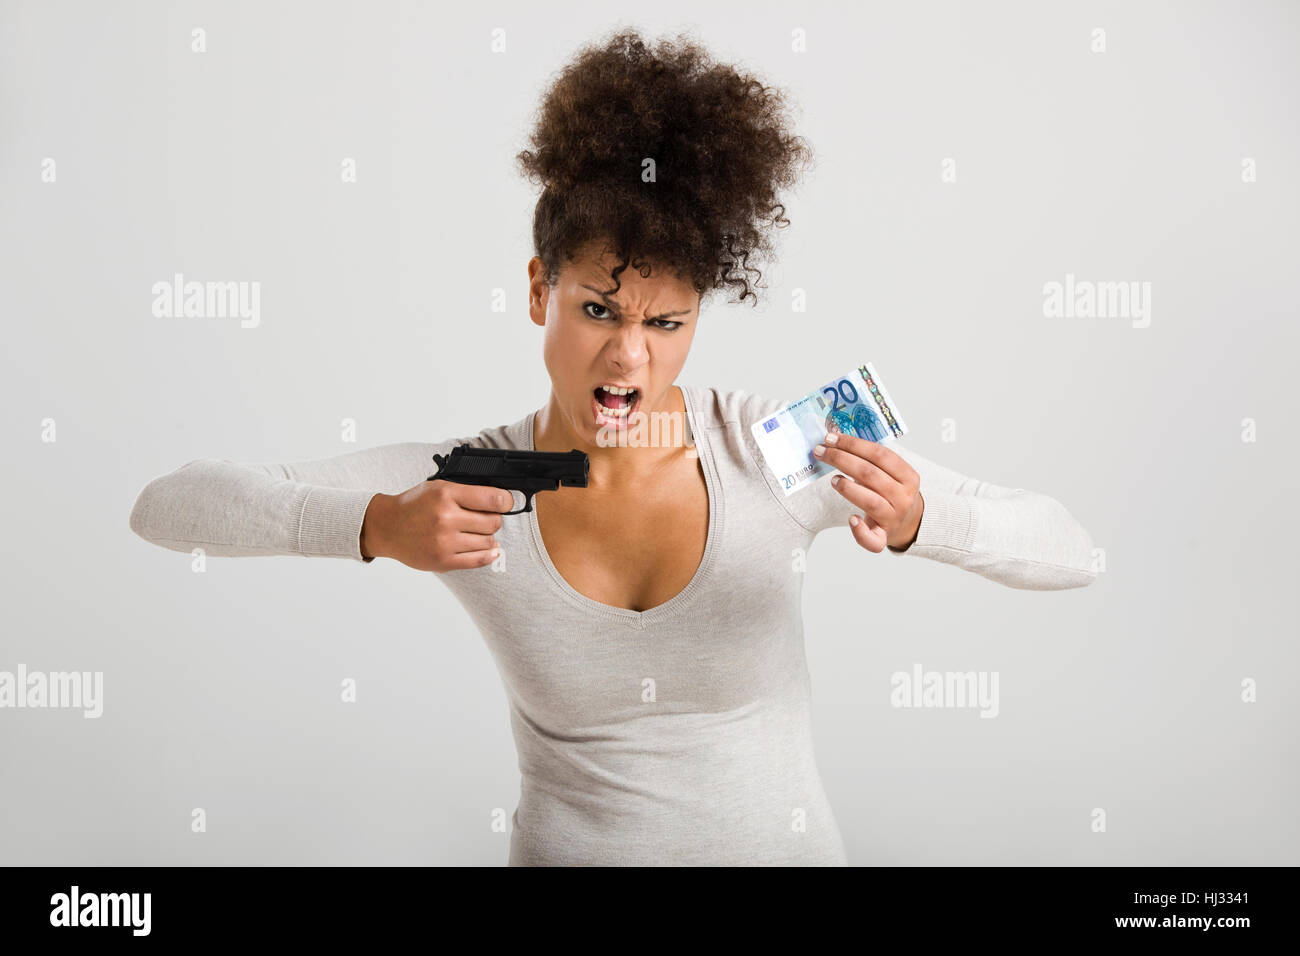 woman, bad, peccant, wickedly, evil, badly, poorly, anger, resentment, annoy, - Stock Image